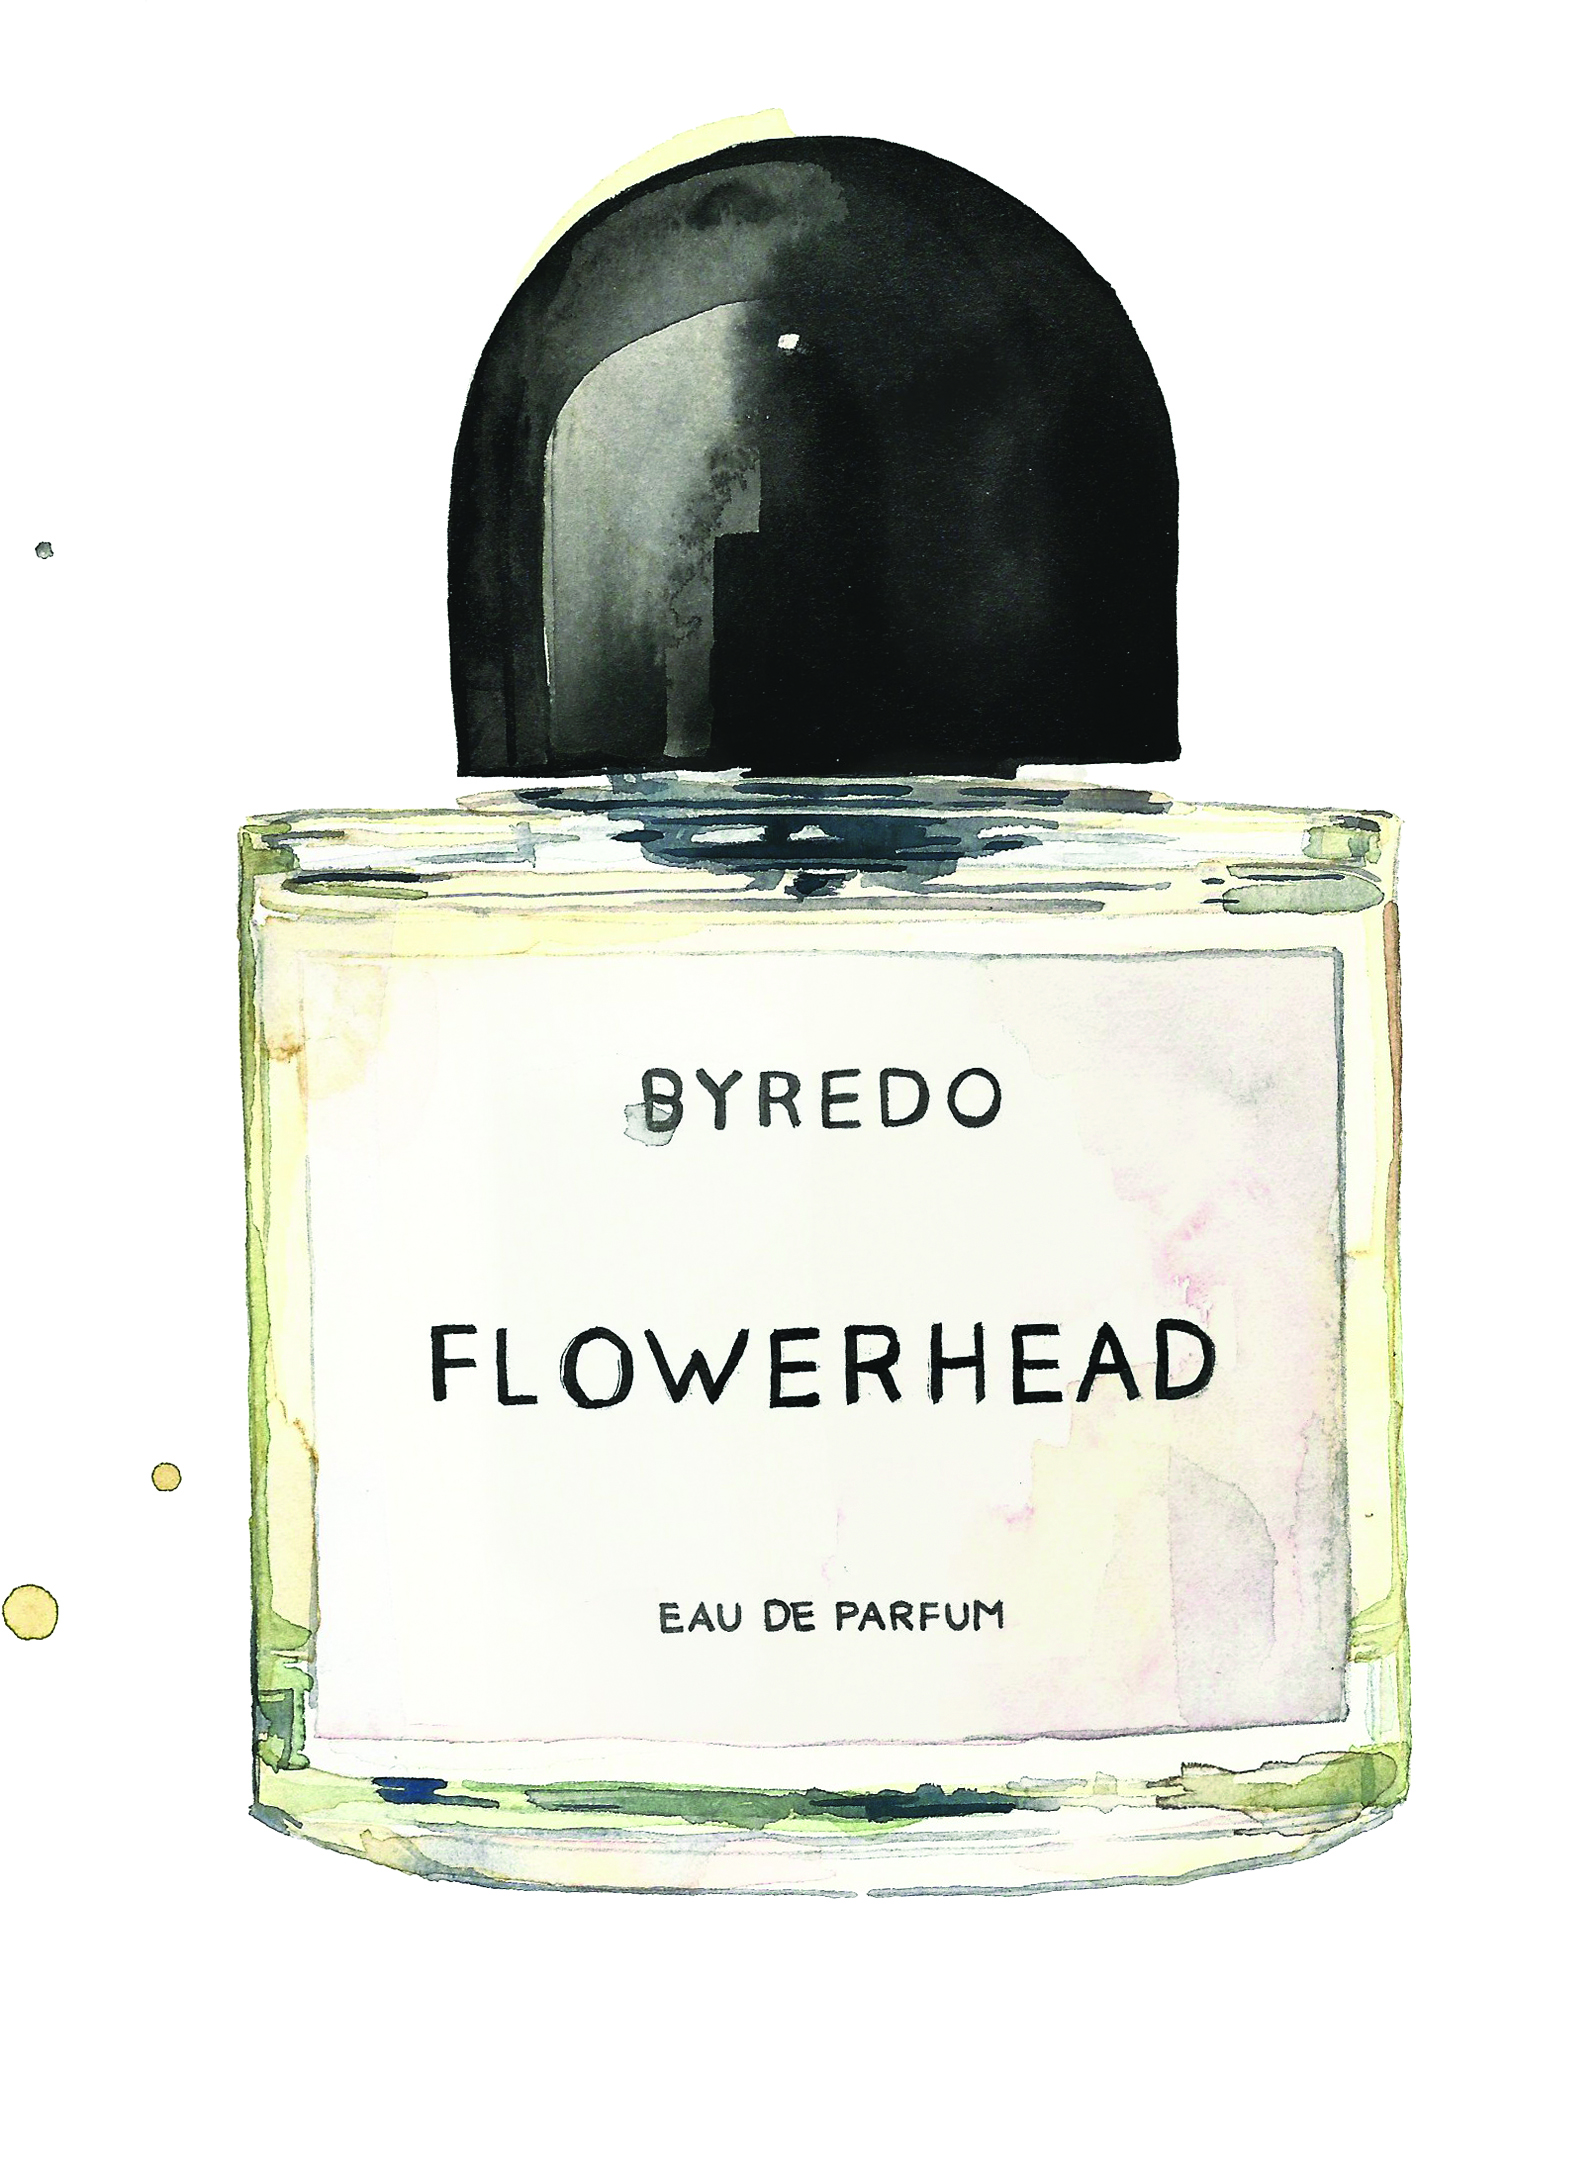 e2e77f9cb7d1 Fragrance of the week - Byredo Flowerhead Eau de Parfum - Together ...